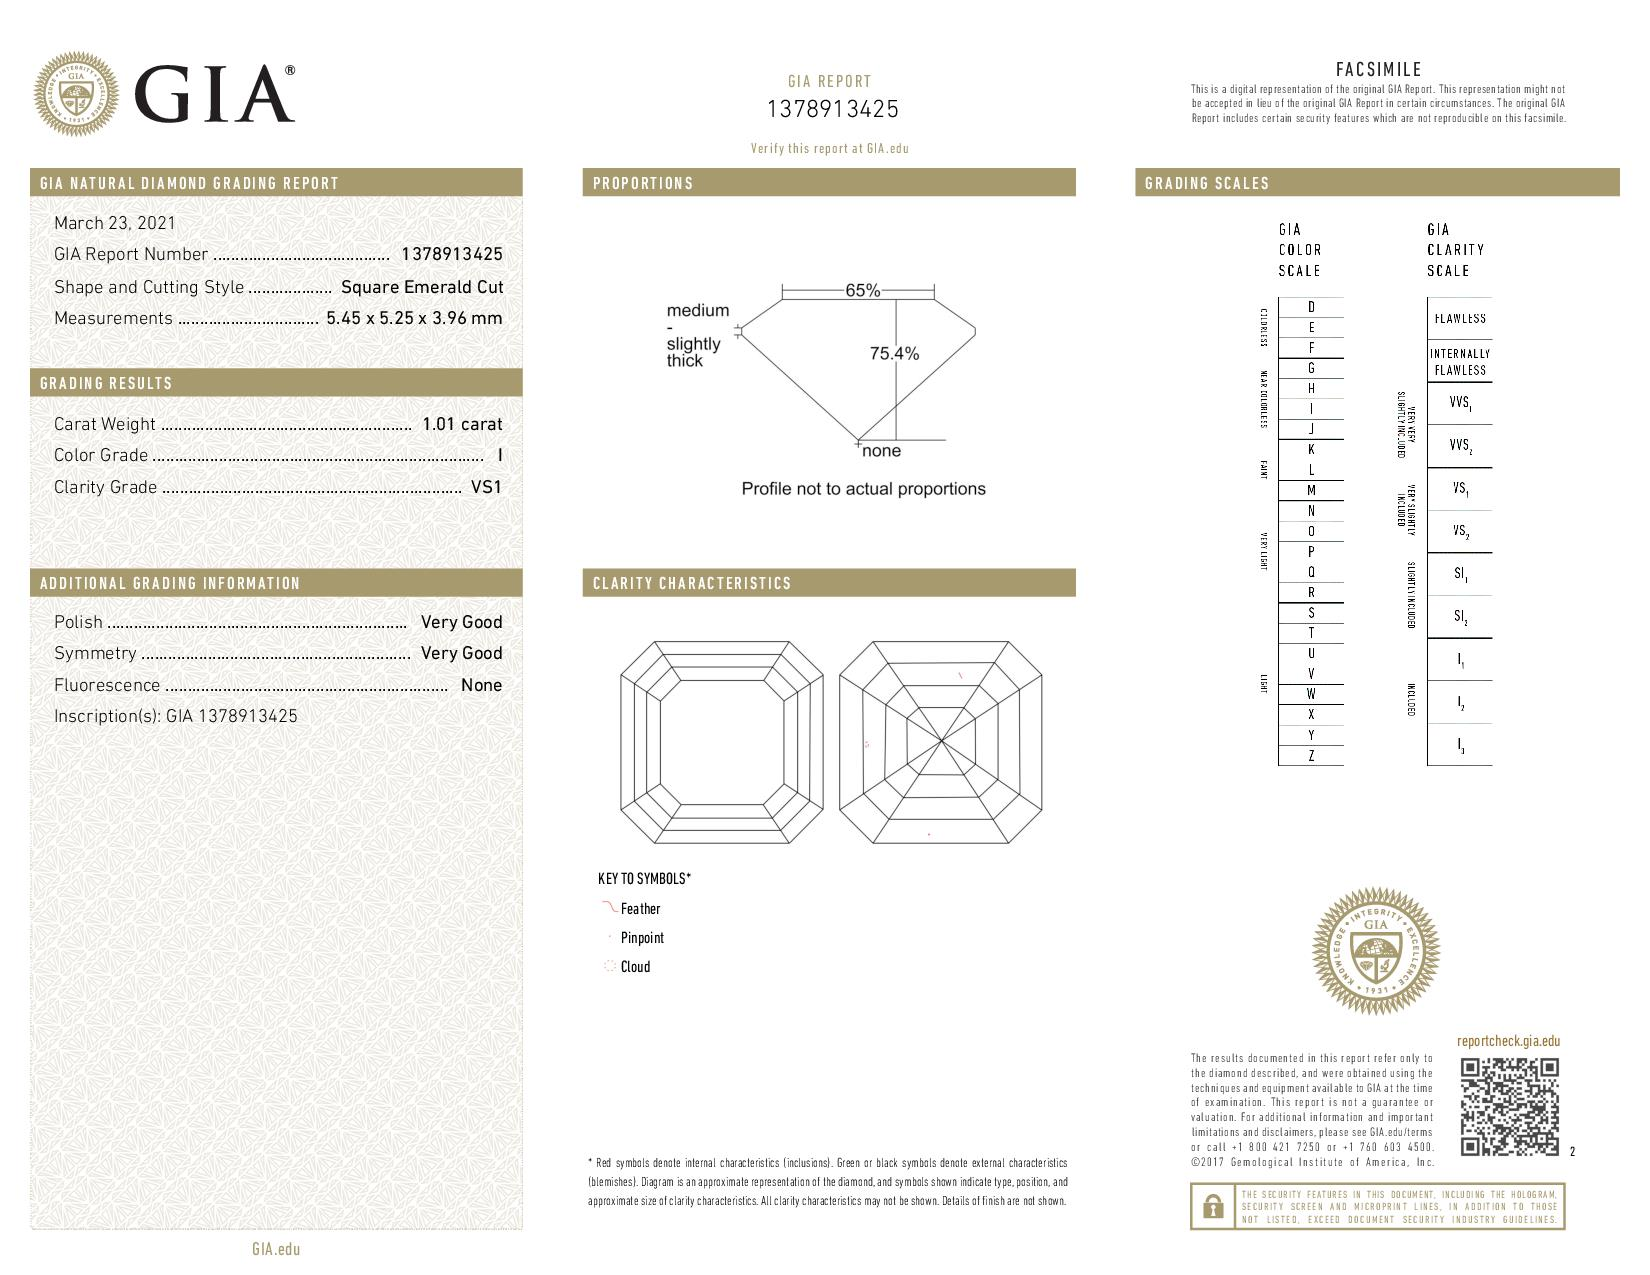 This is a 1.01 carat asscher shape, I color, VS1 clarity natural diamond accompanied by a GIA grading report.